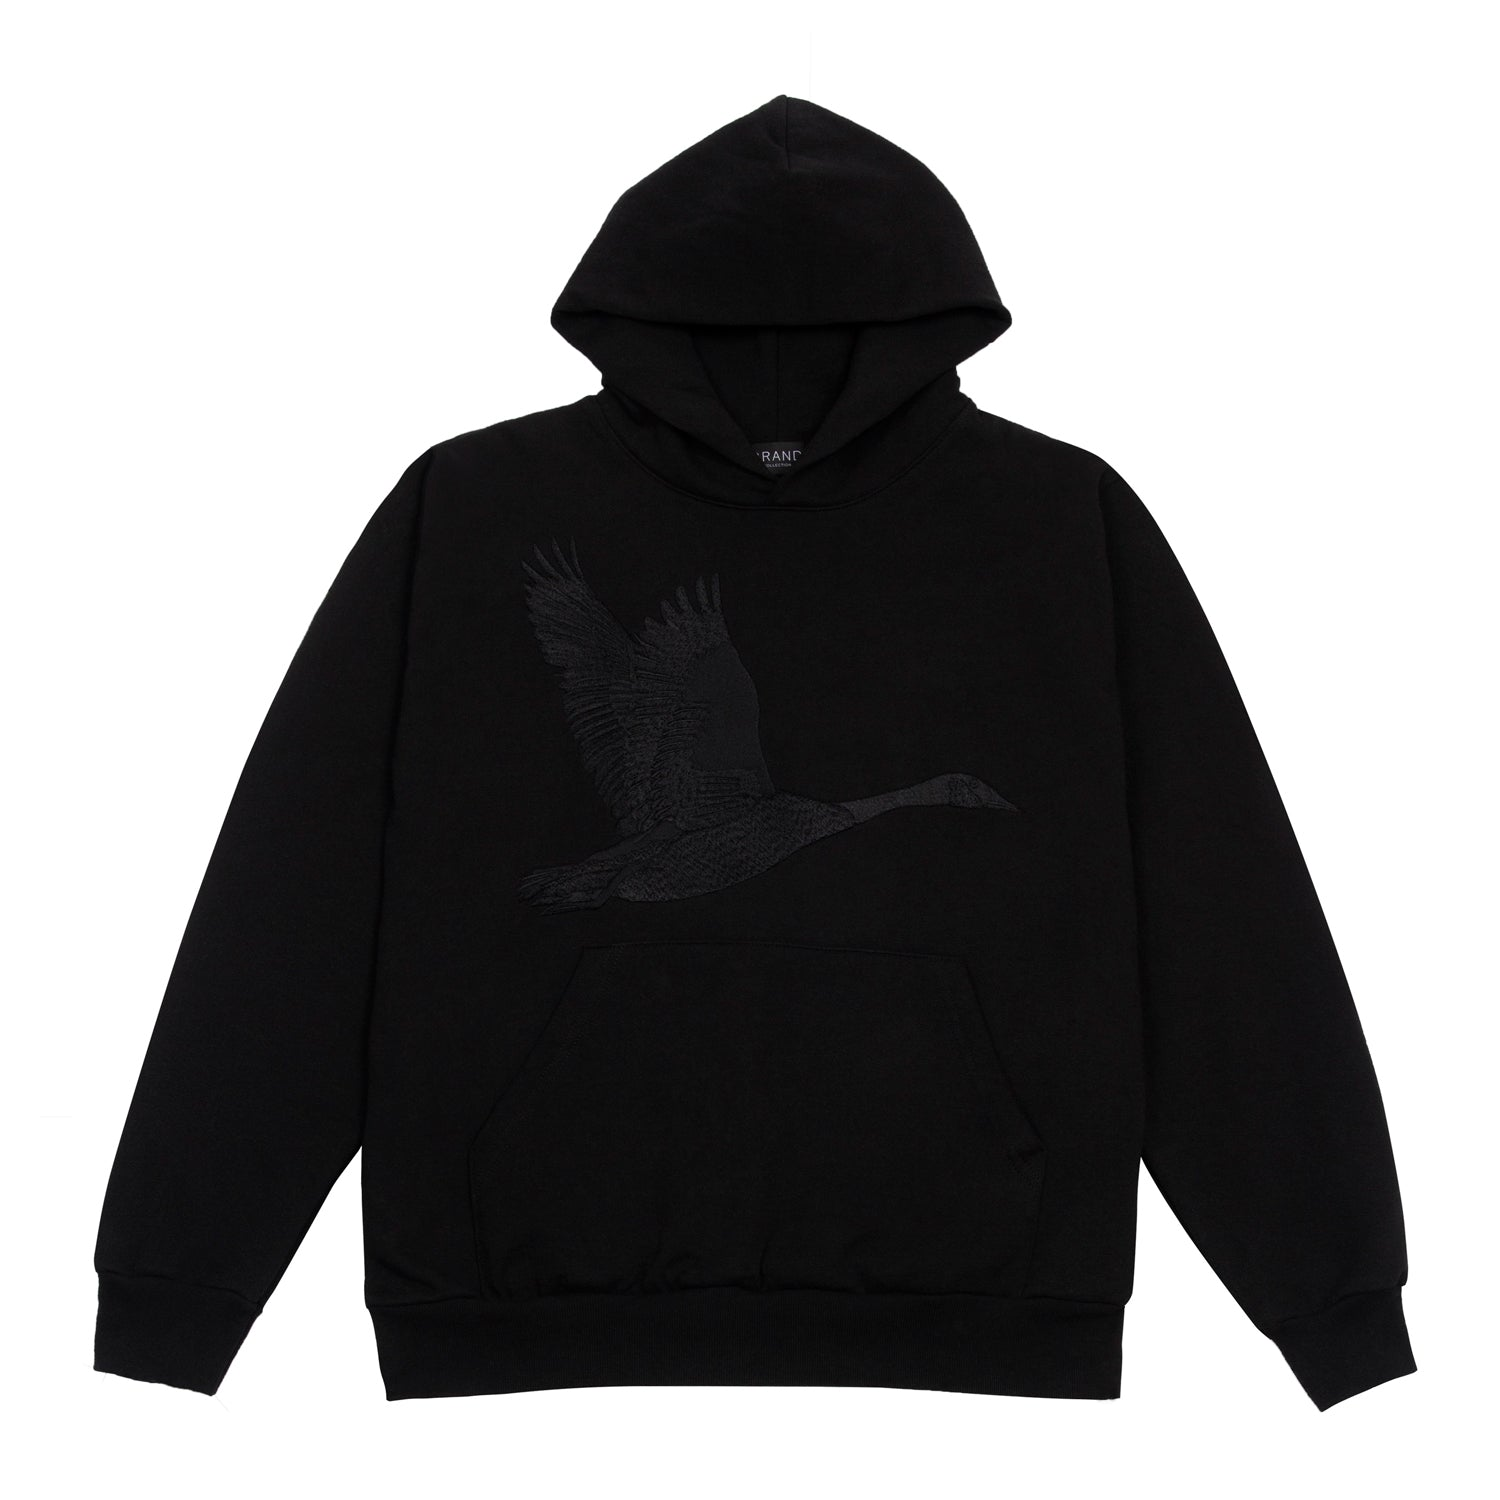 Grand Collection Embroidered Goose Hoodie Black